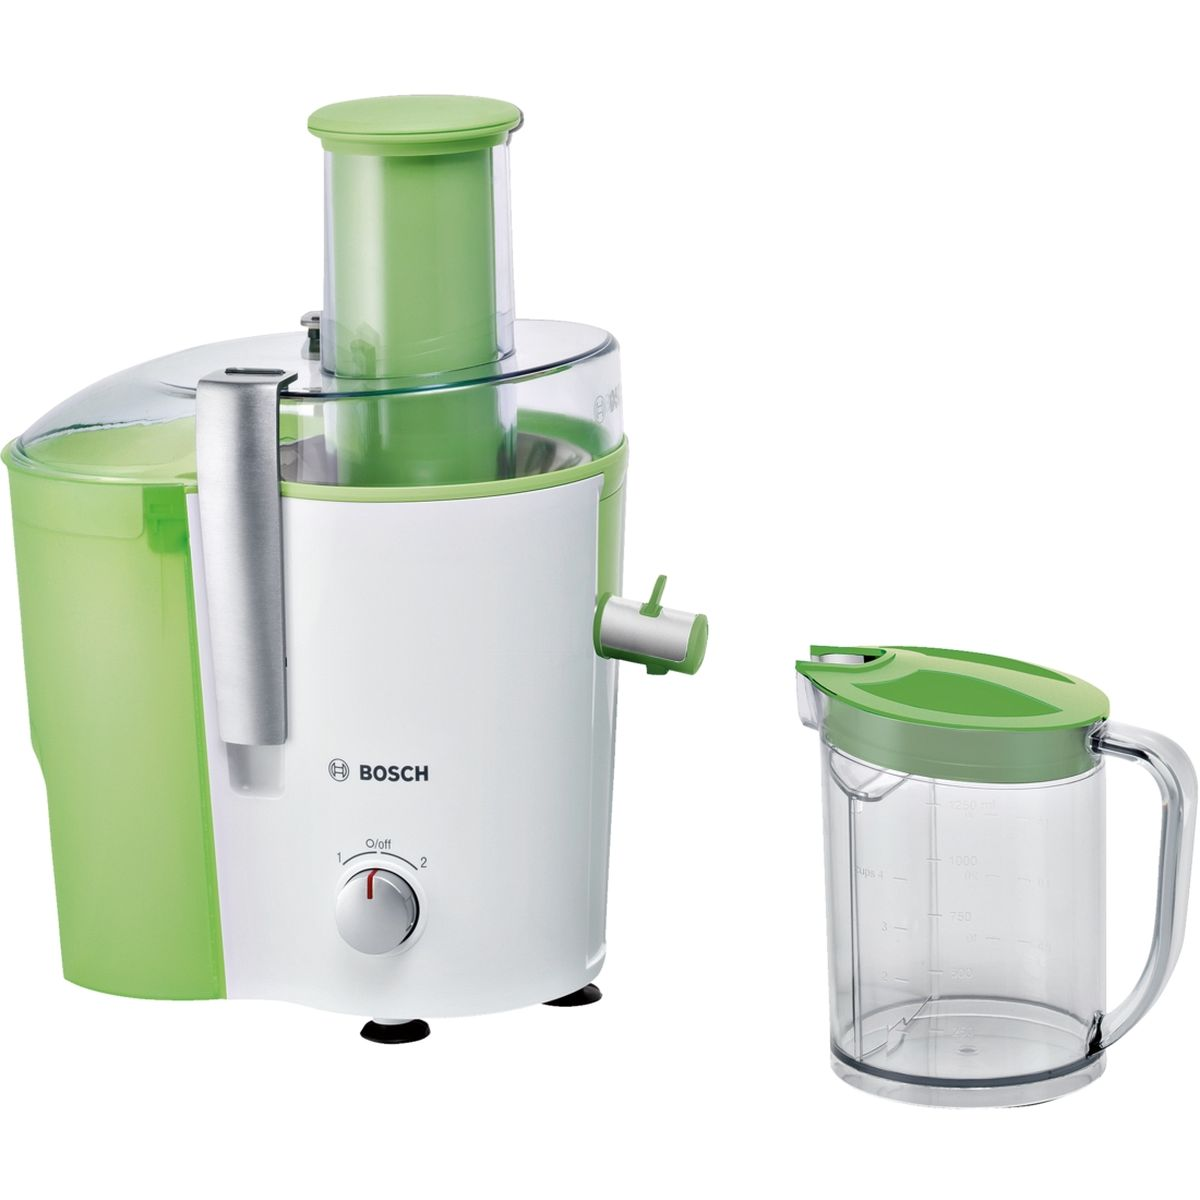 Bosch MES25G0, White Green соковыжималка